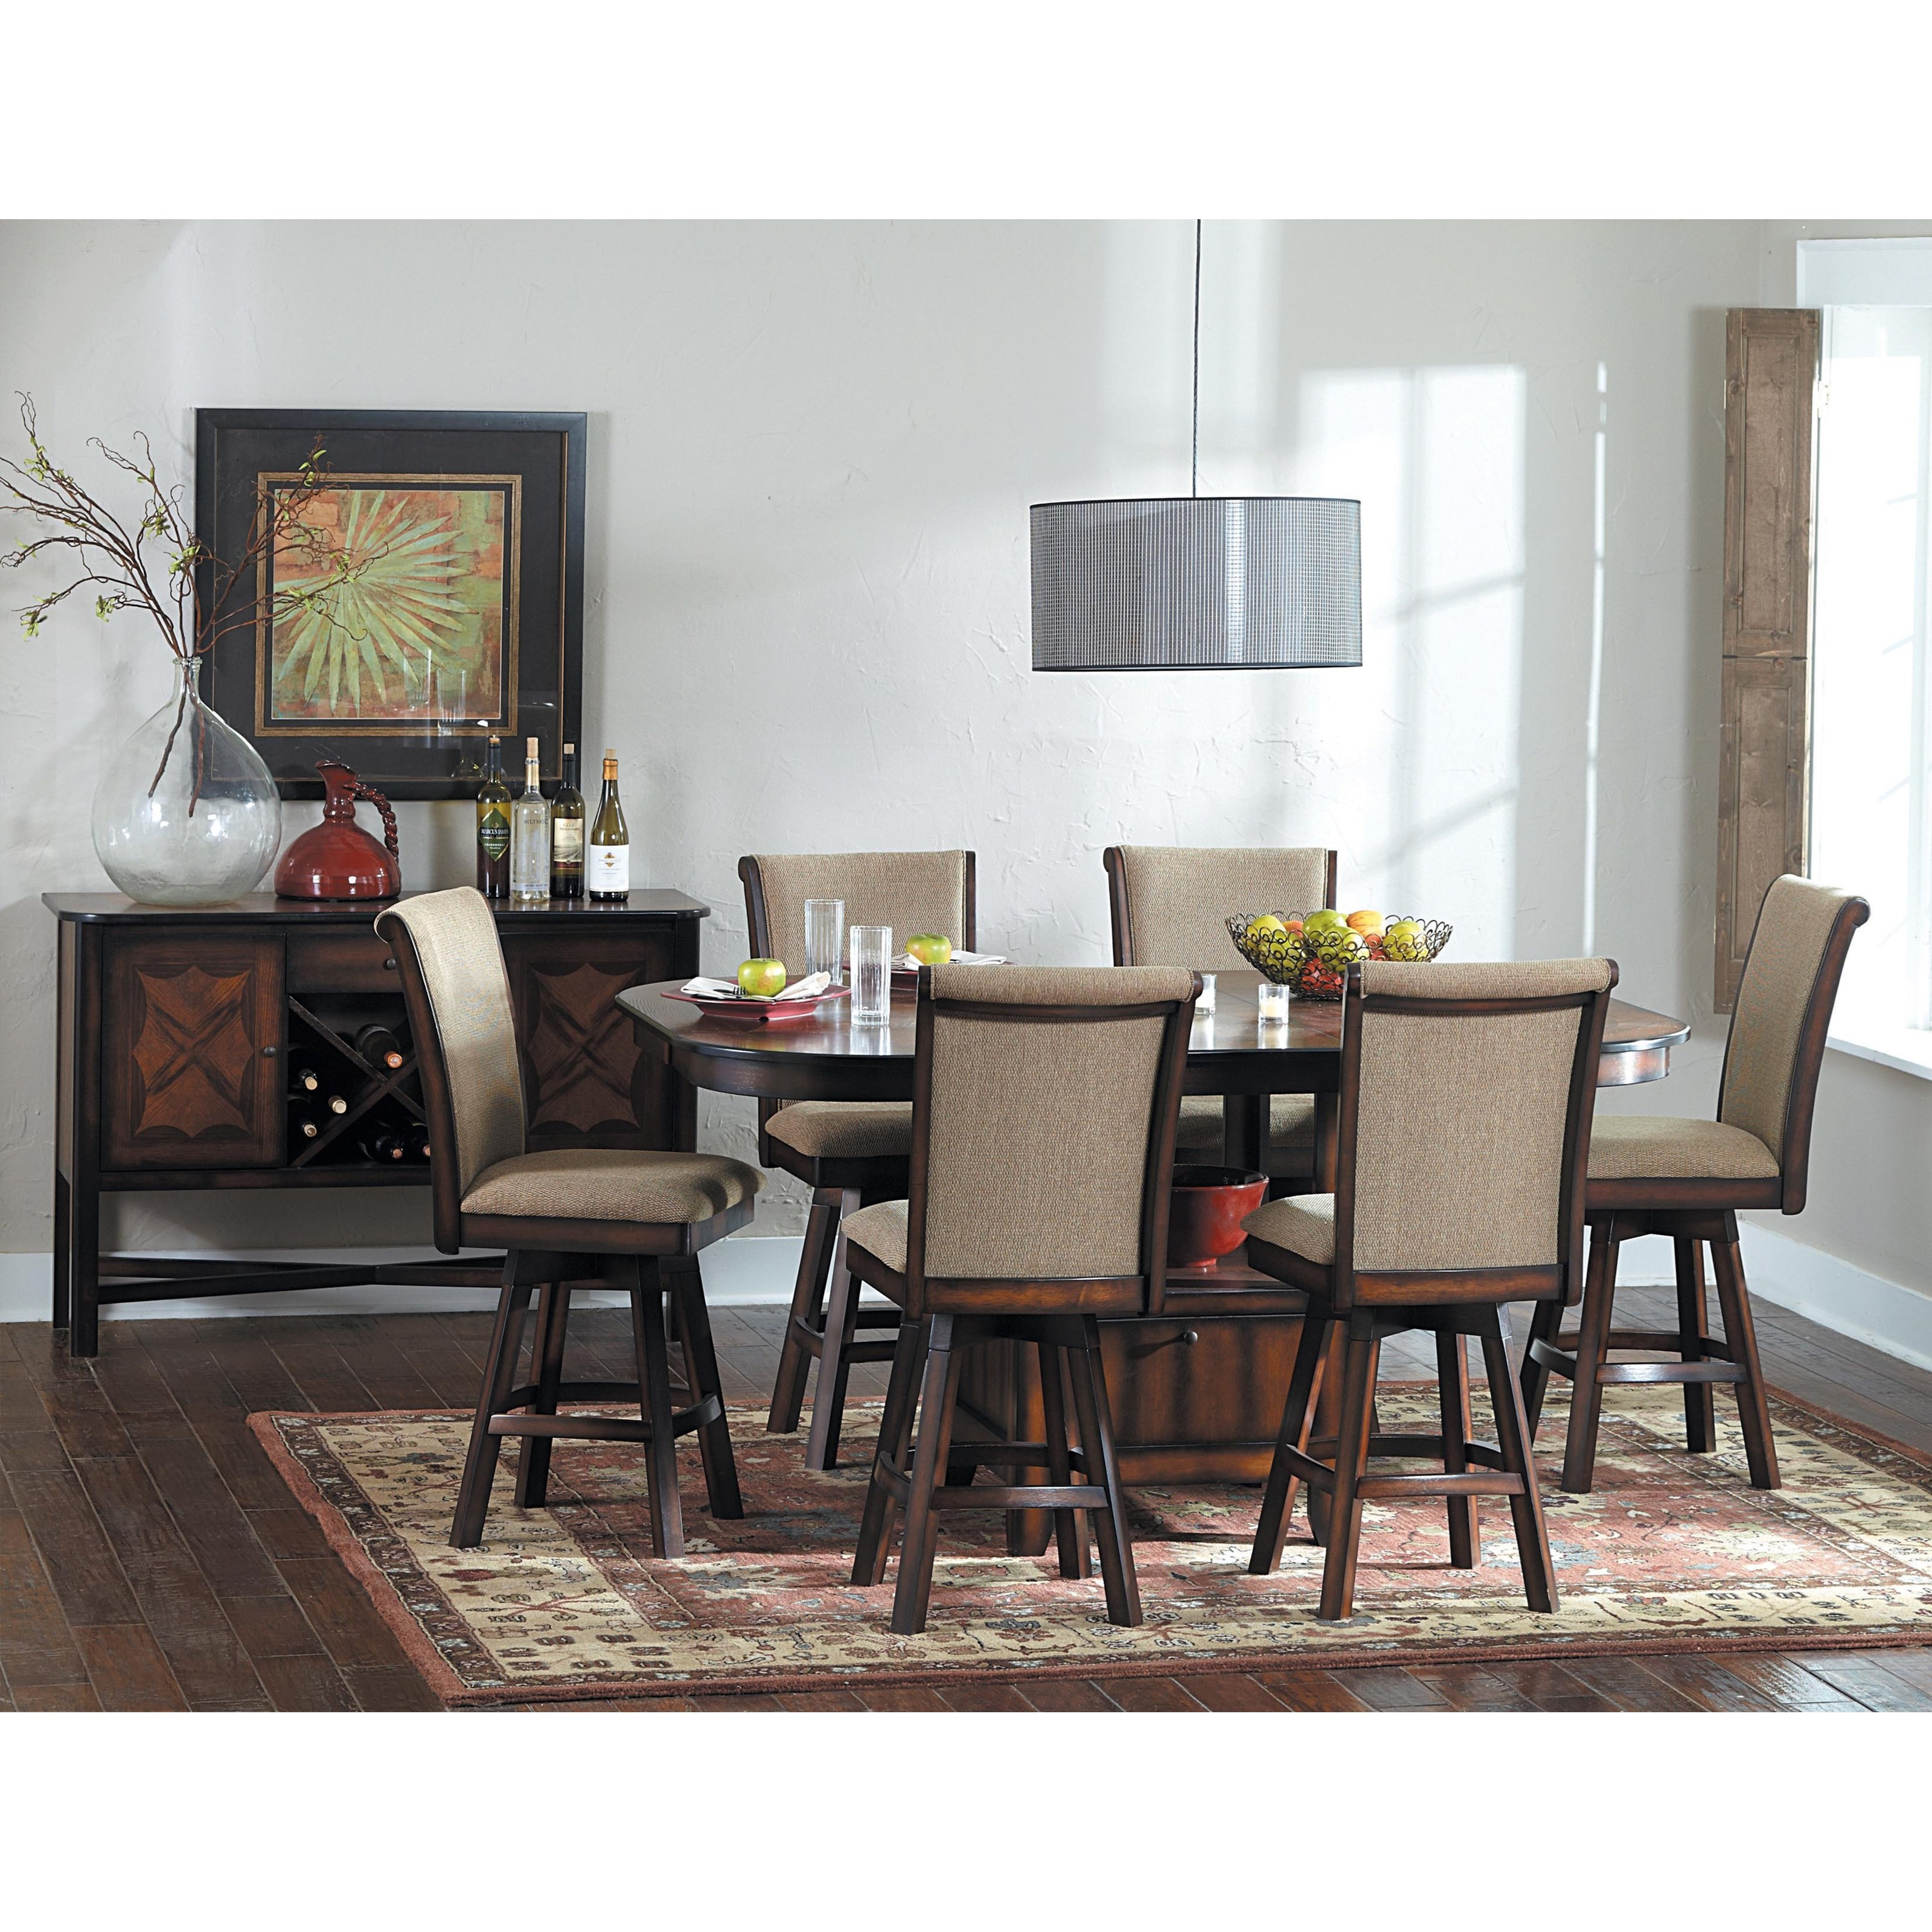 Homelegance 626 Counter Height Dining Room Group - Item Number: 626 Dining Room Group 2